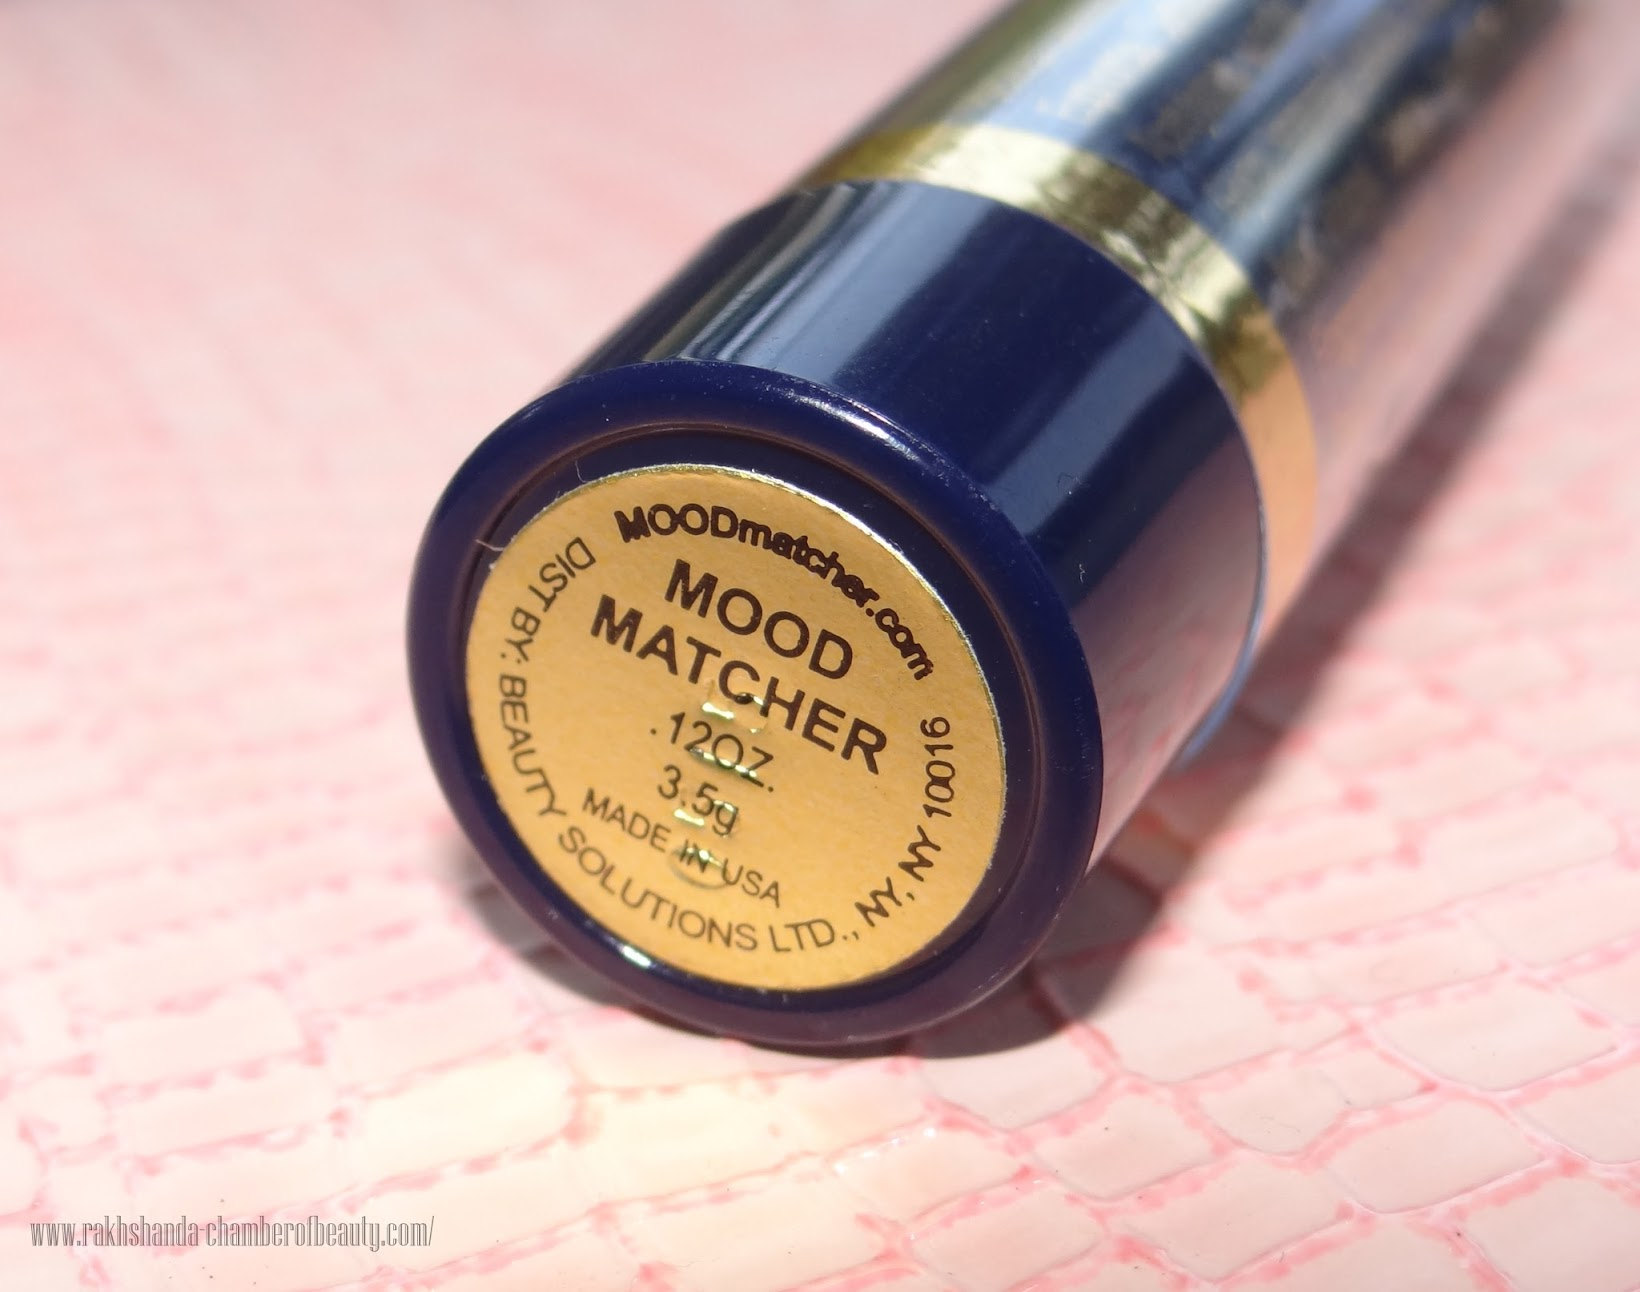 Fran Wilson Moodmatcher Lipstick - Review, Swatches and Price in India, Indian beauty blogger, Chamber of Beauty